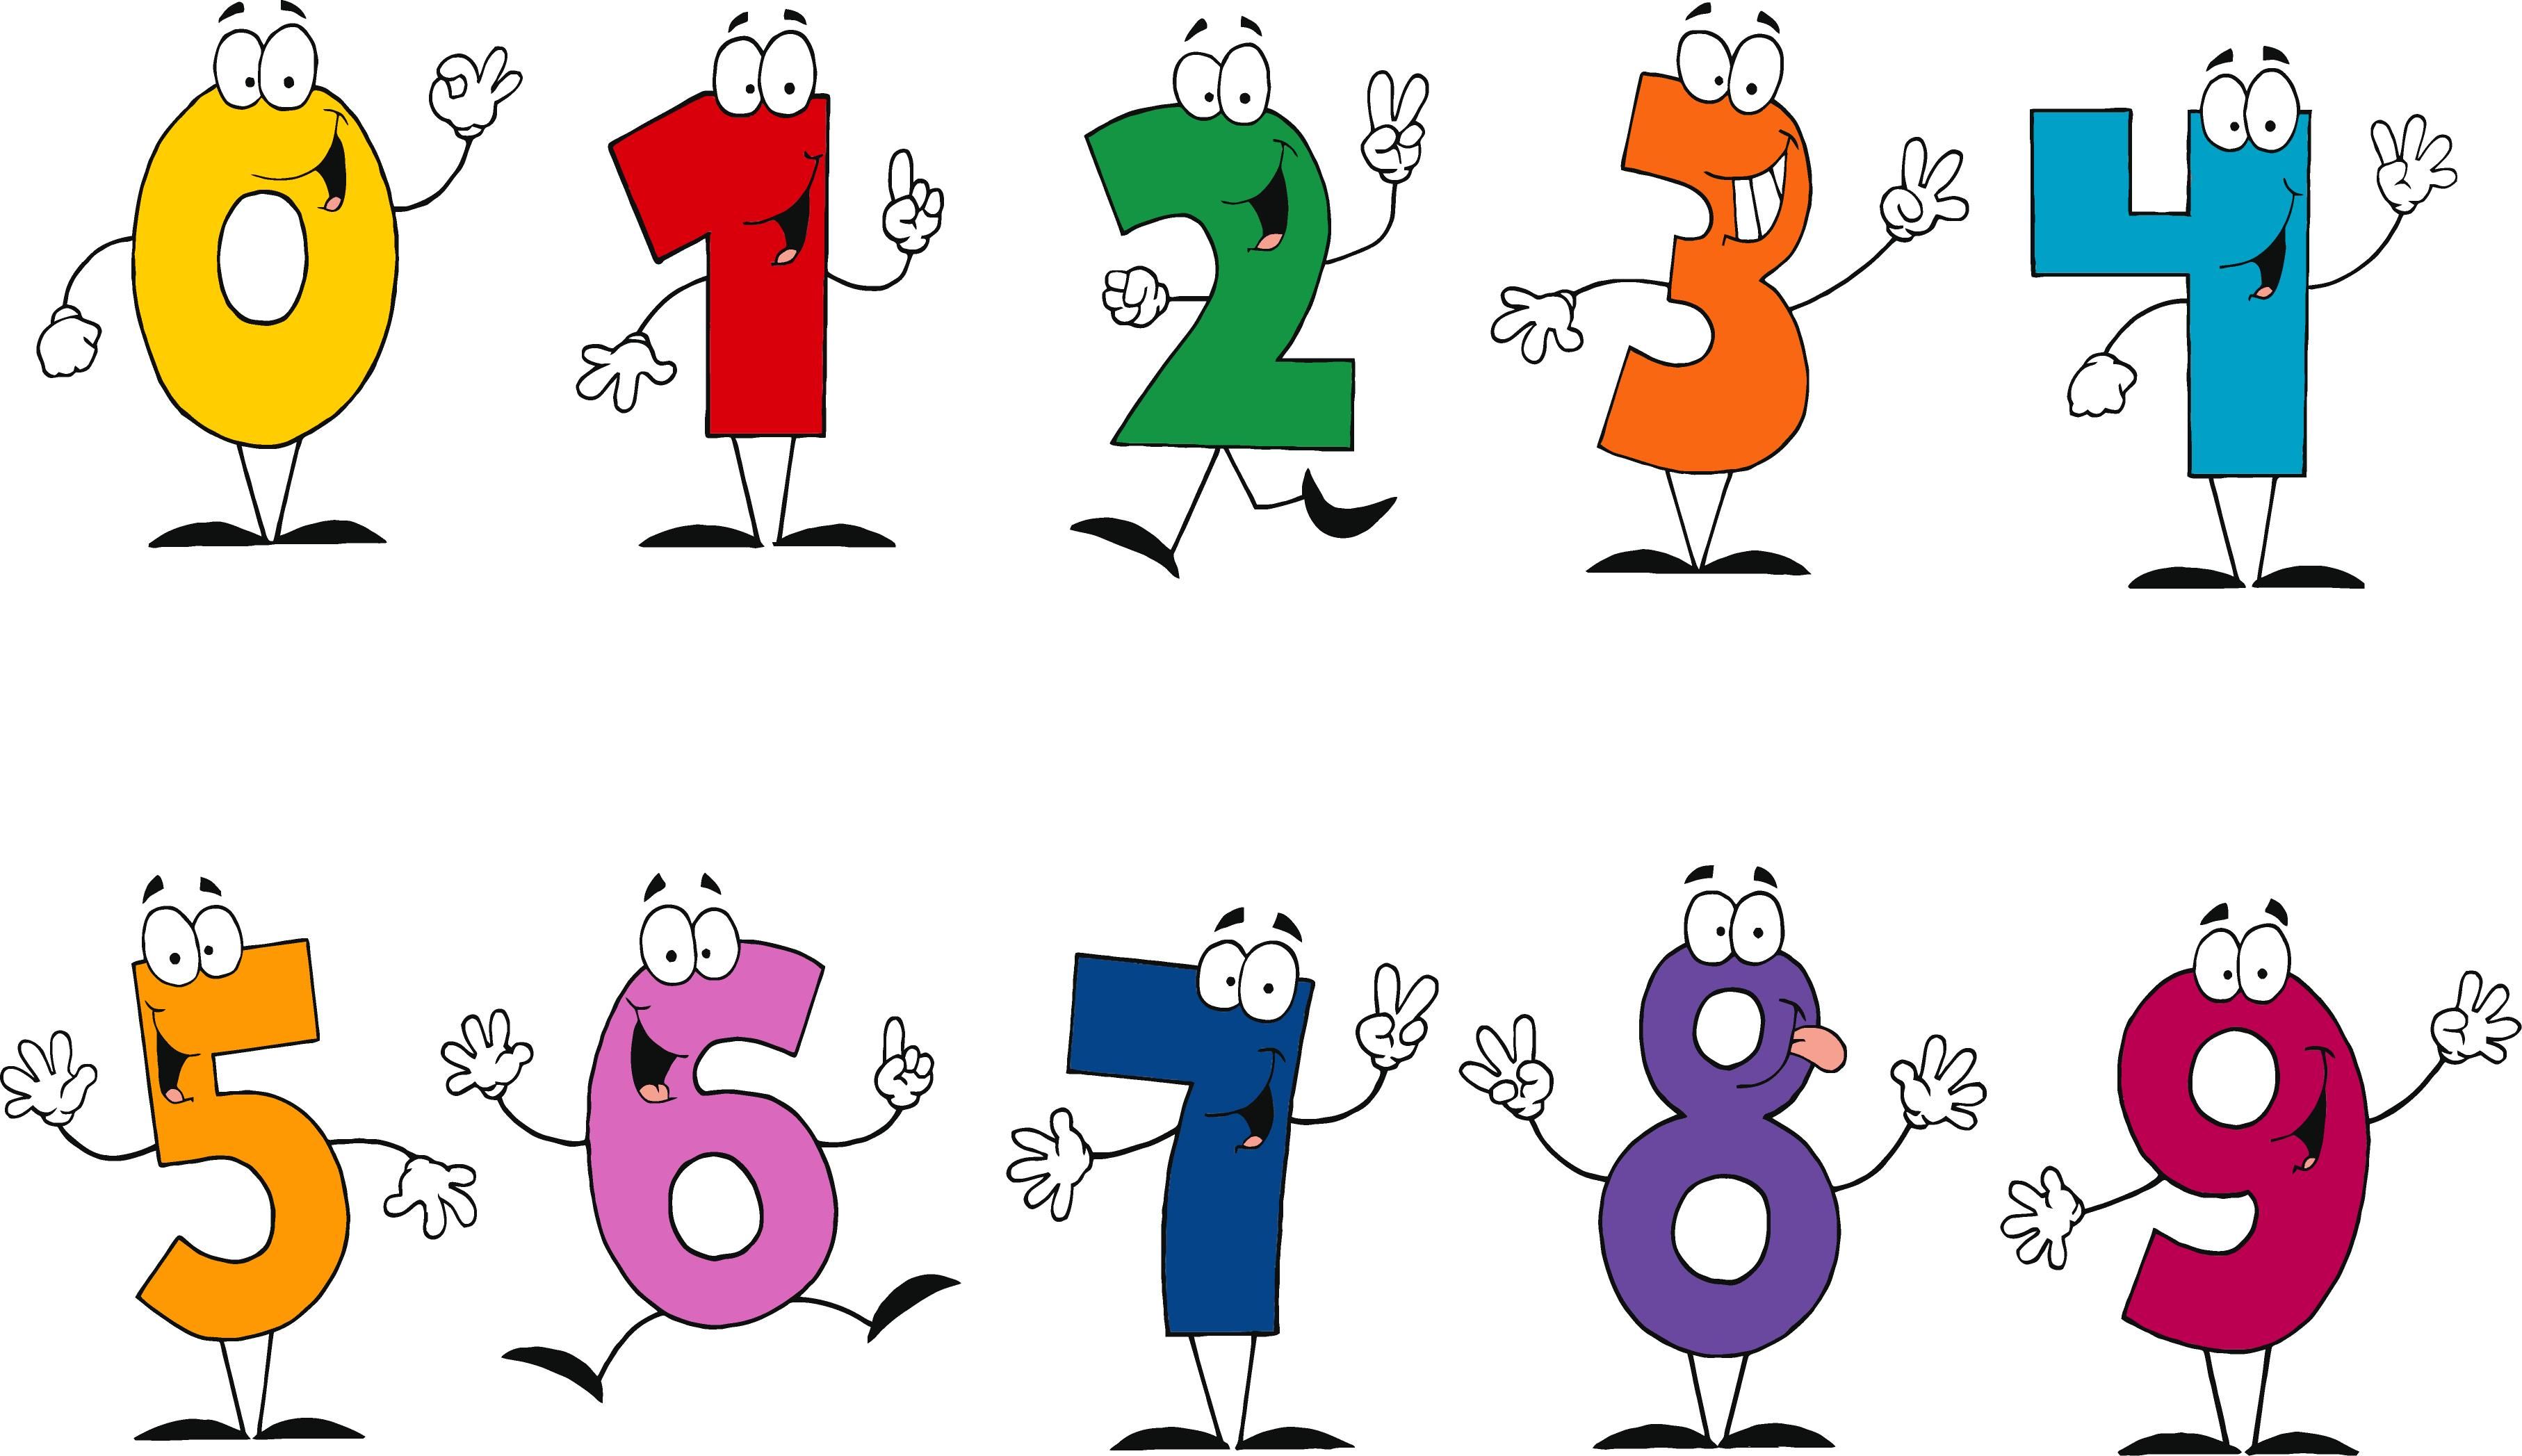 Clipart Of Numbers 1 10-Clipart Of Numbers 1 10-19